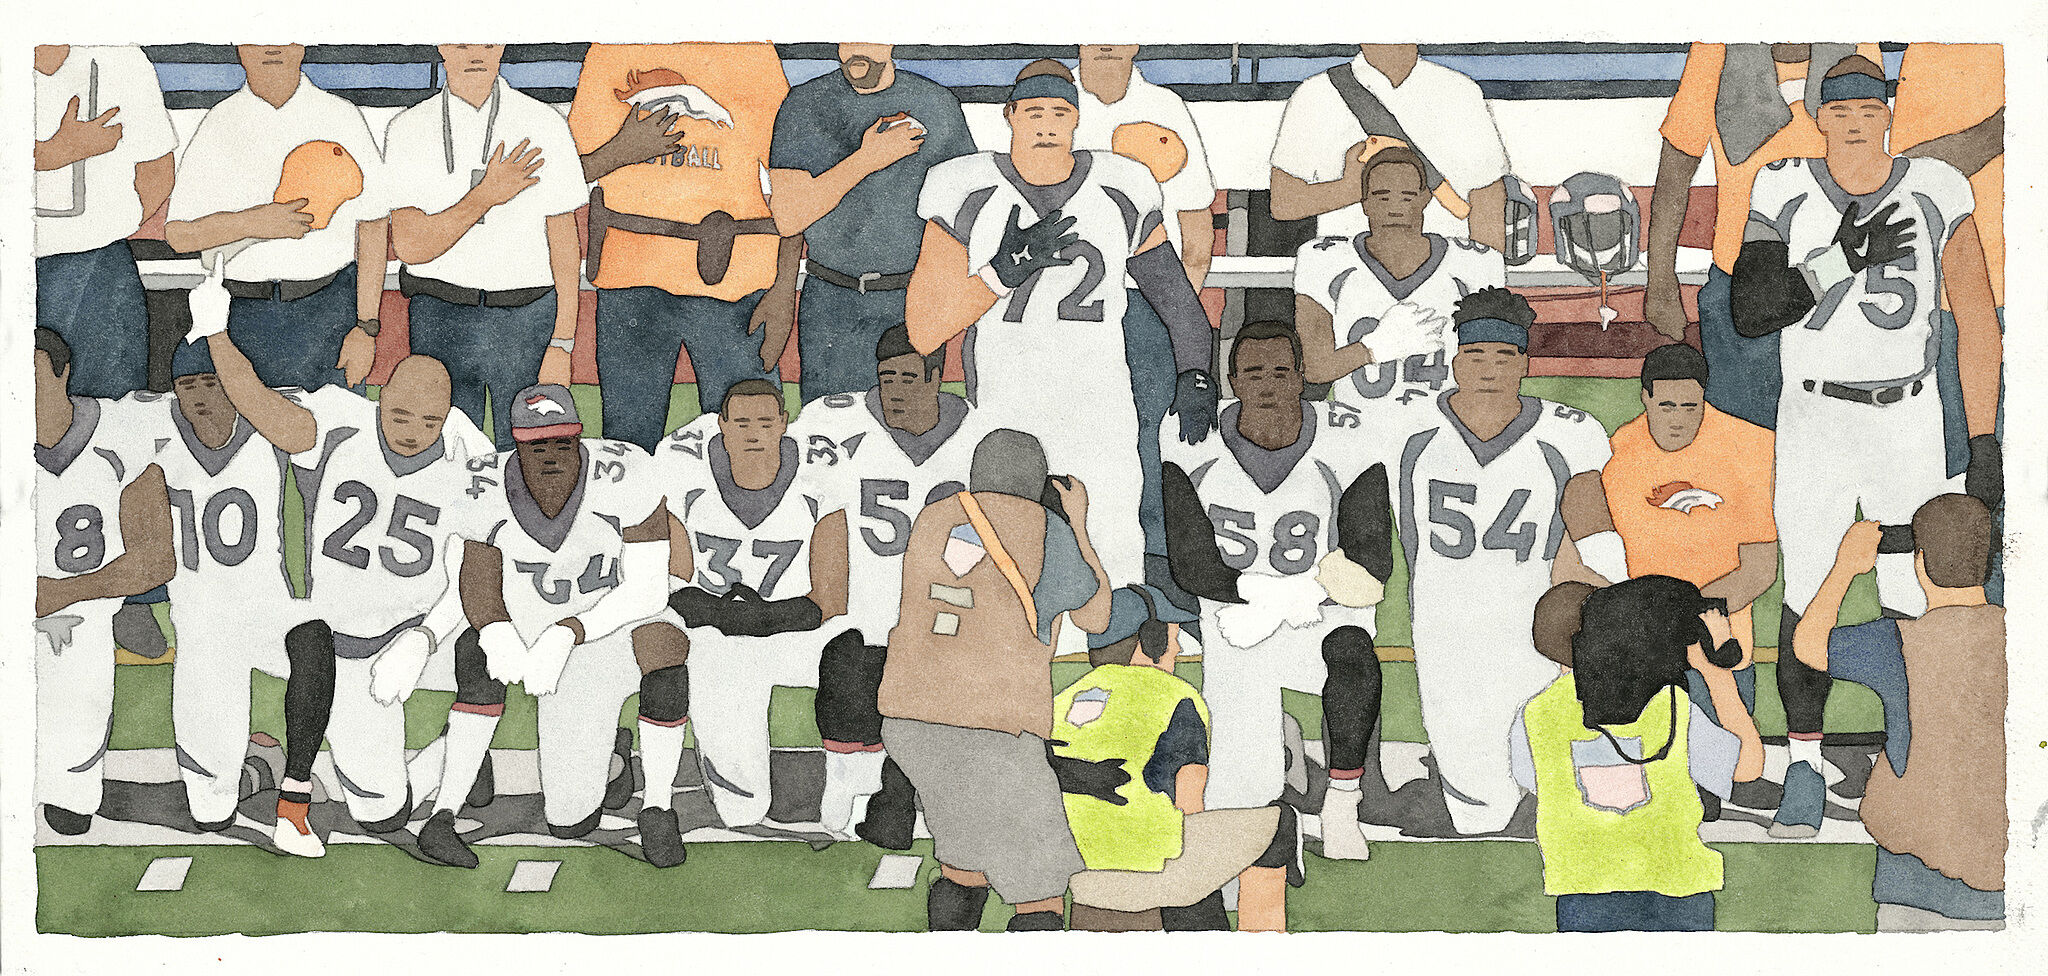 A painting of football players kneeling during the National Anthem.